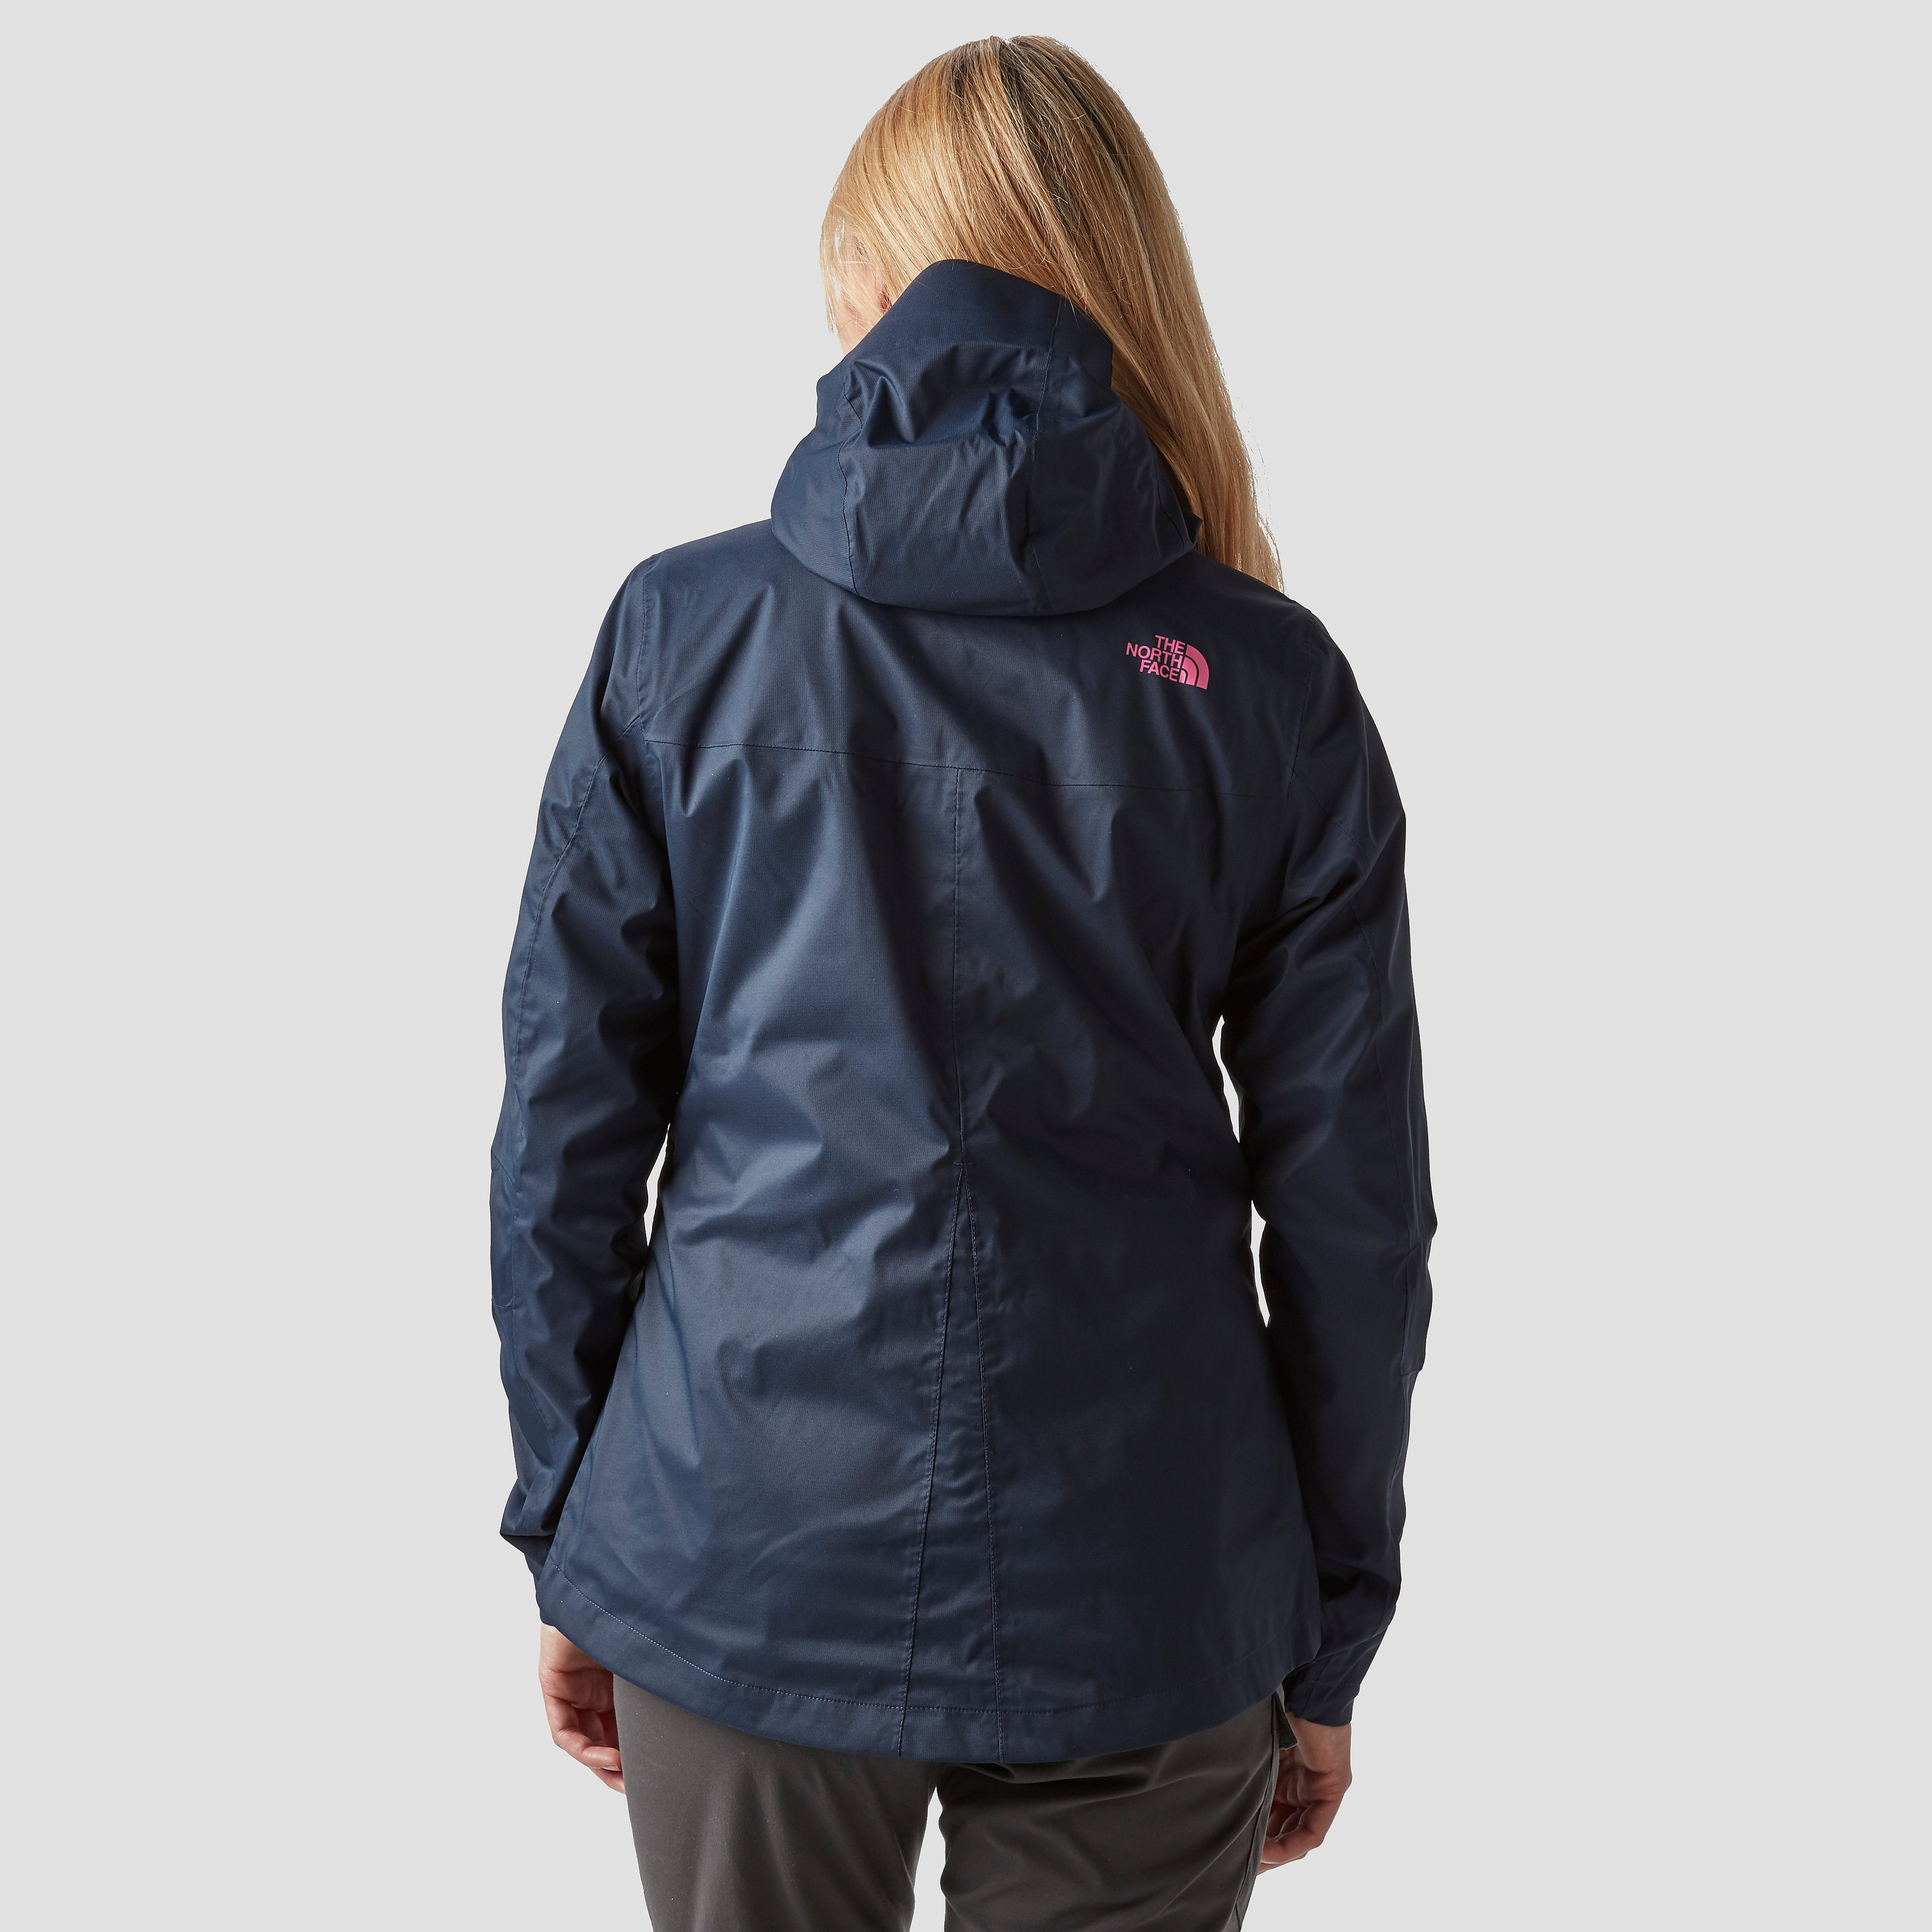 The North Face Women's Tanken Triclimate 3 in 1 Jacket